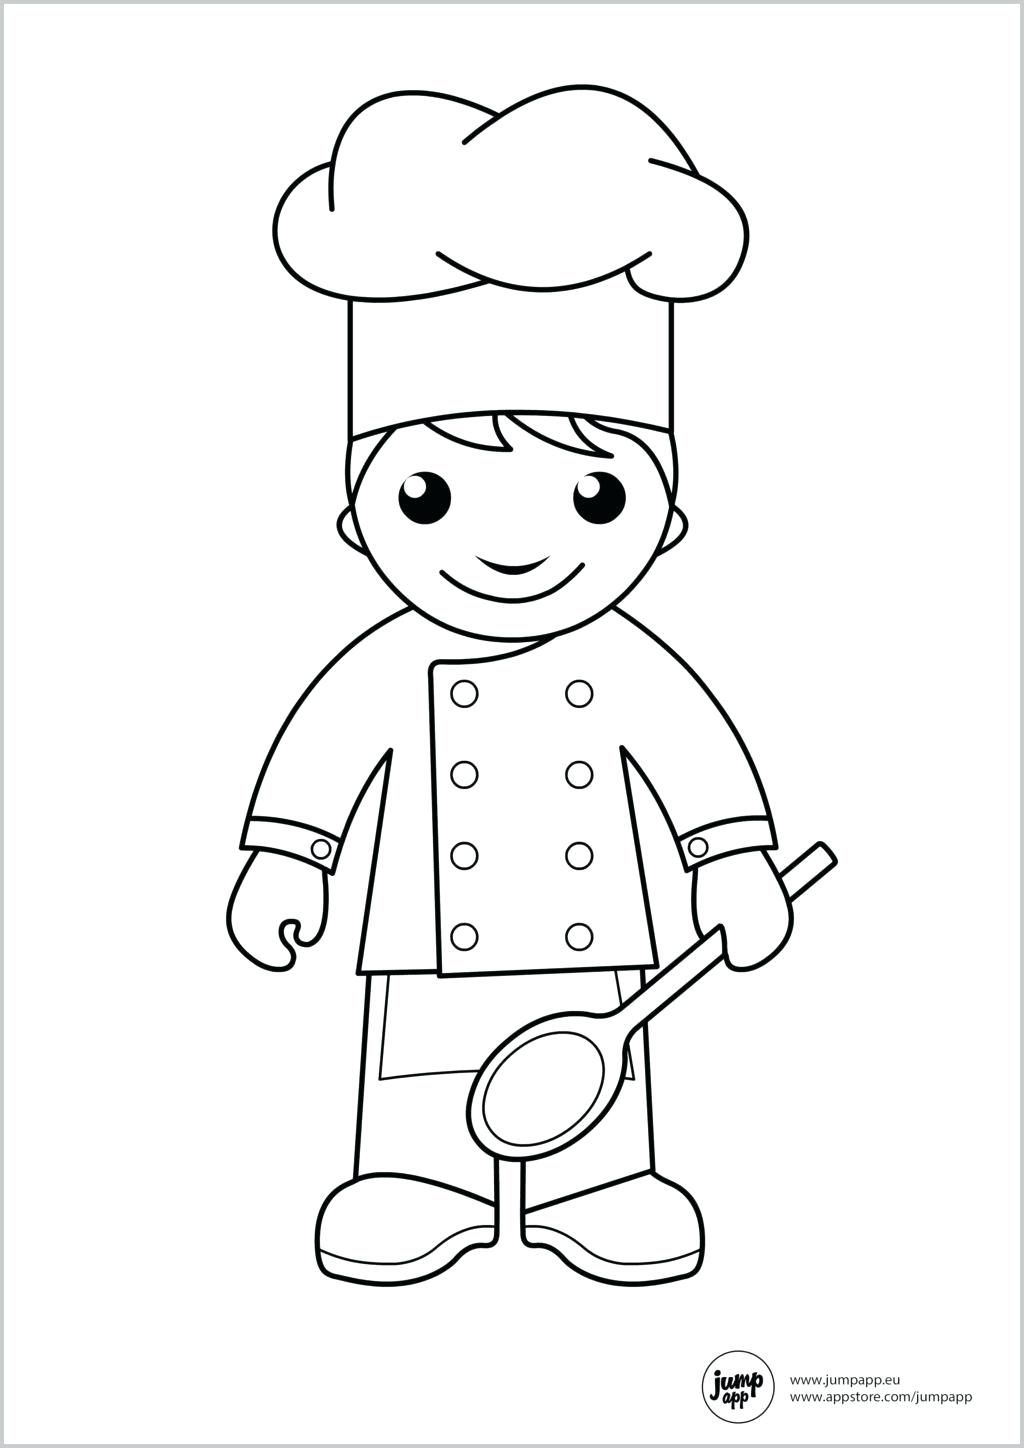 Community Helpers Coloring Pages Coloring Pages Dragon Coloring Book Brotherprint Community Helpers Pages Helpe Coloring Pages Community Helpers Coloring Books